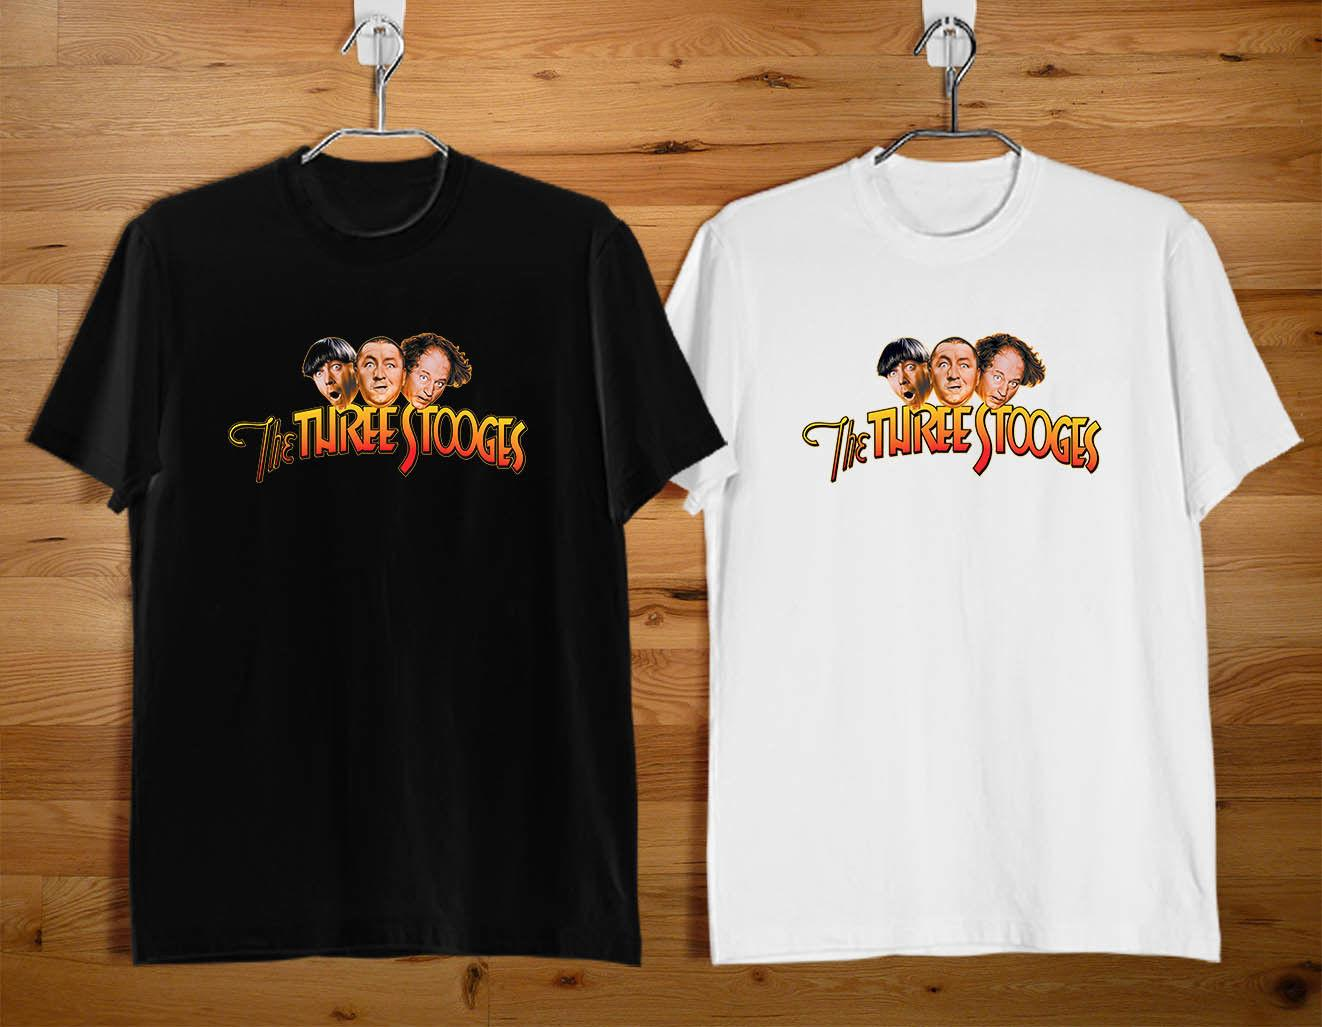 5927077fde THREE STOOGES Pick Your Friends Men's T-shirt Size S-2XL Funny free  shipping Unisex Tshirt top